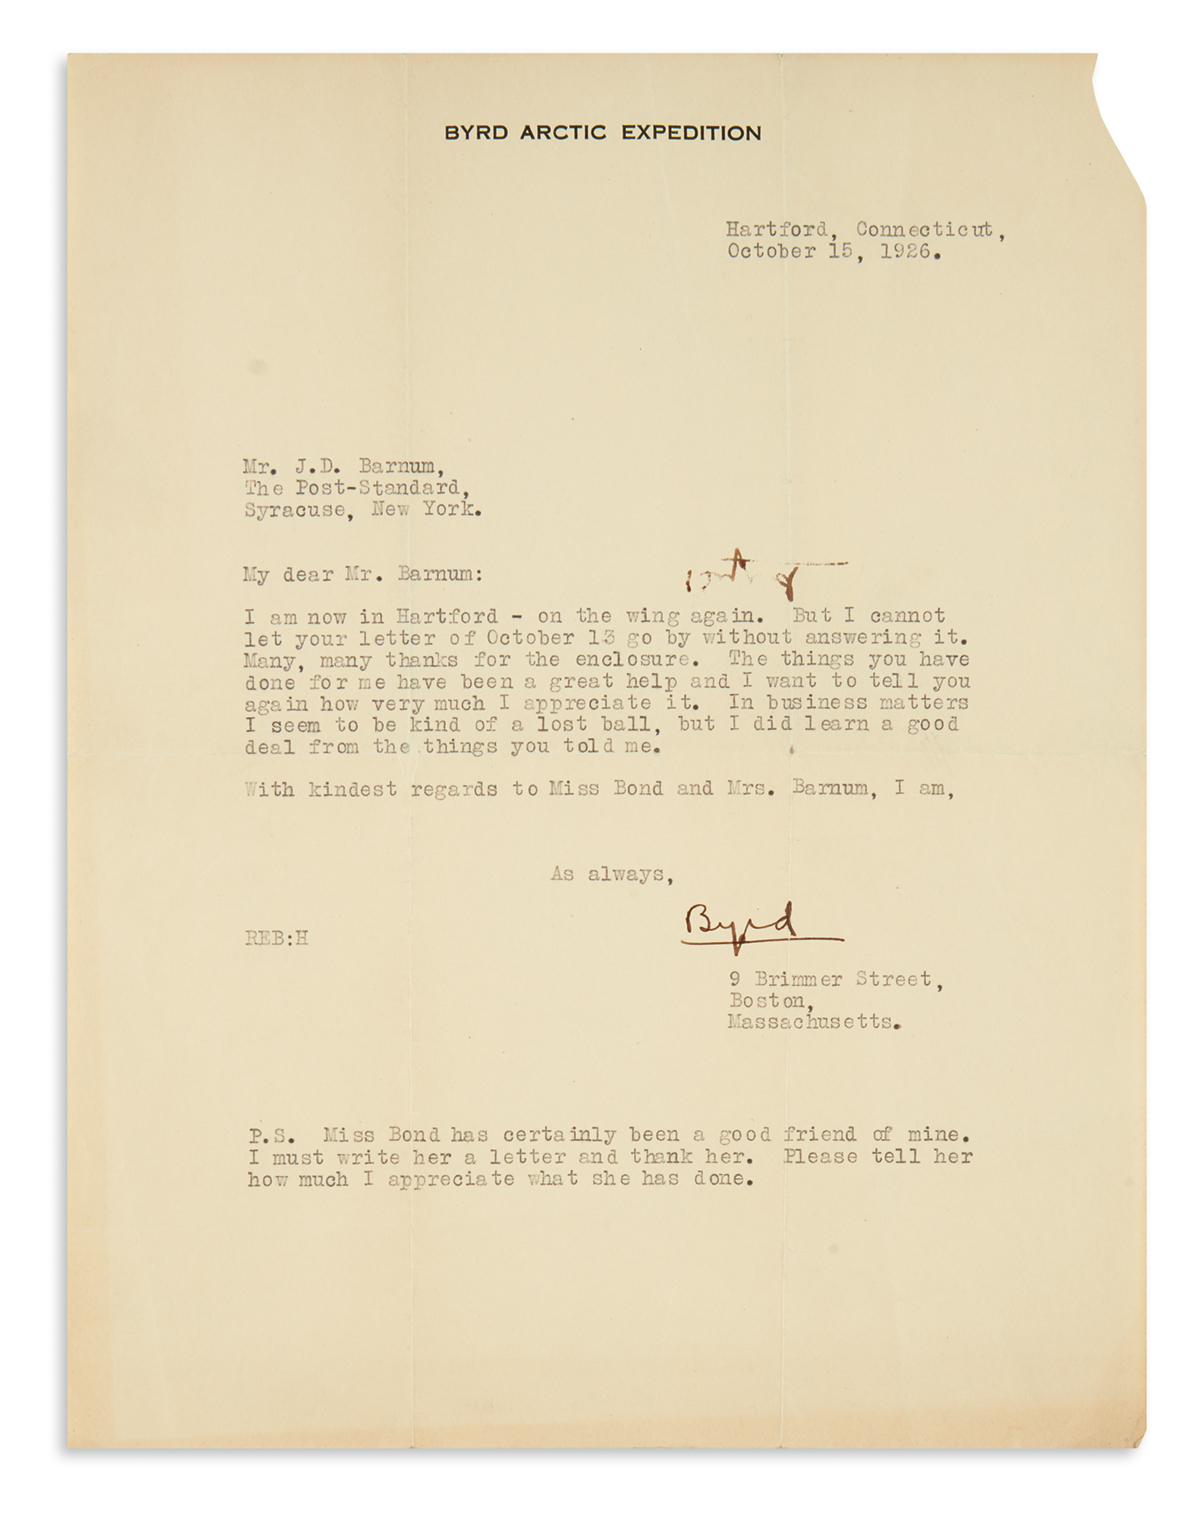 BYRD-RICHARD-E-Small-archive-of-items-sent-to-publisher-of-t